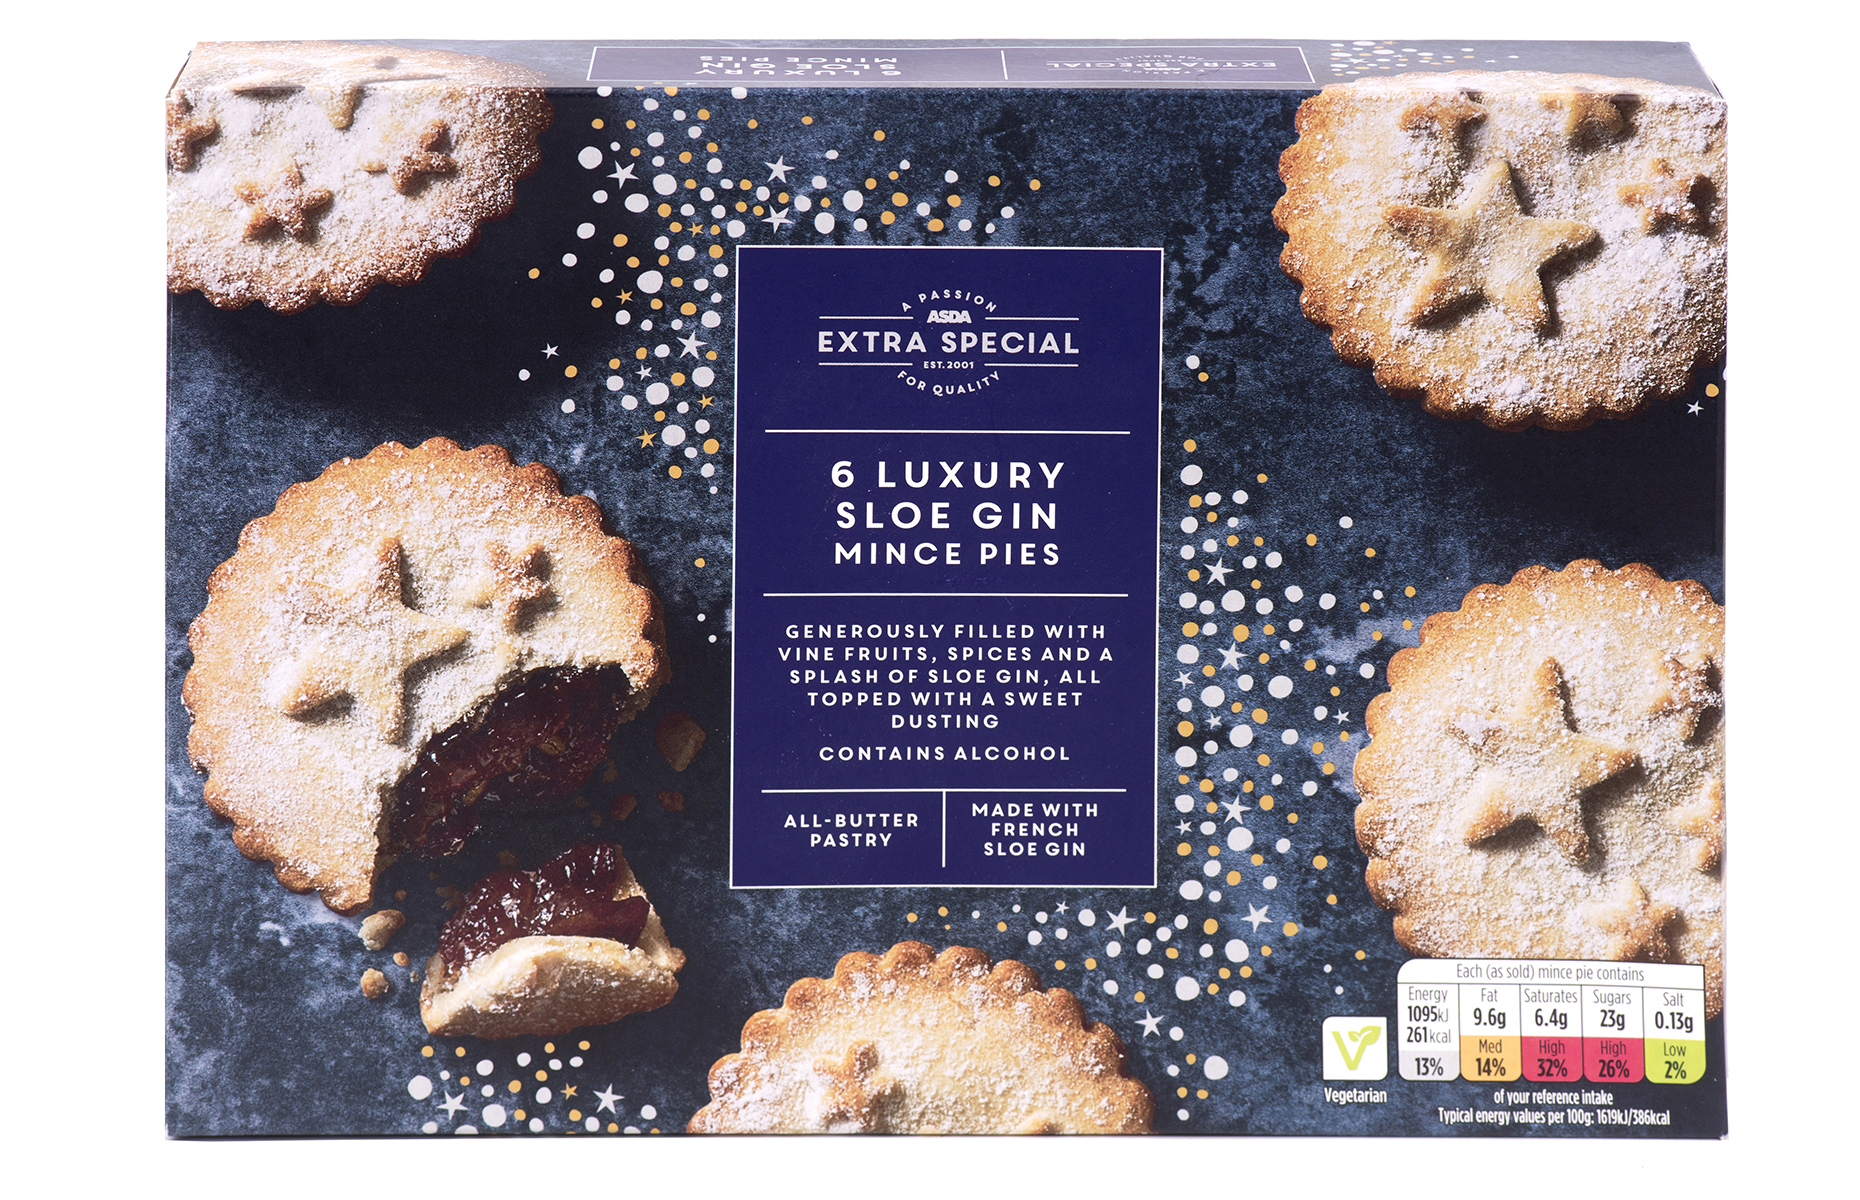 ASDA Extra Special sloe gin mince pies